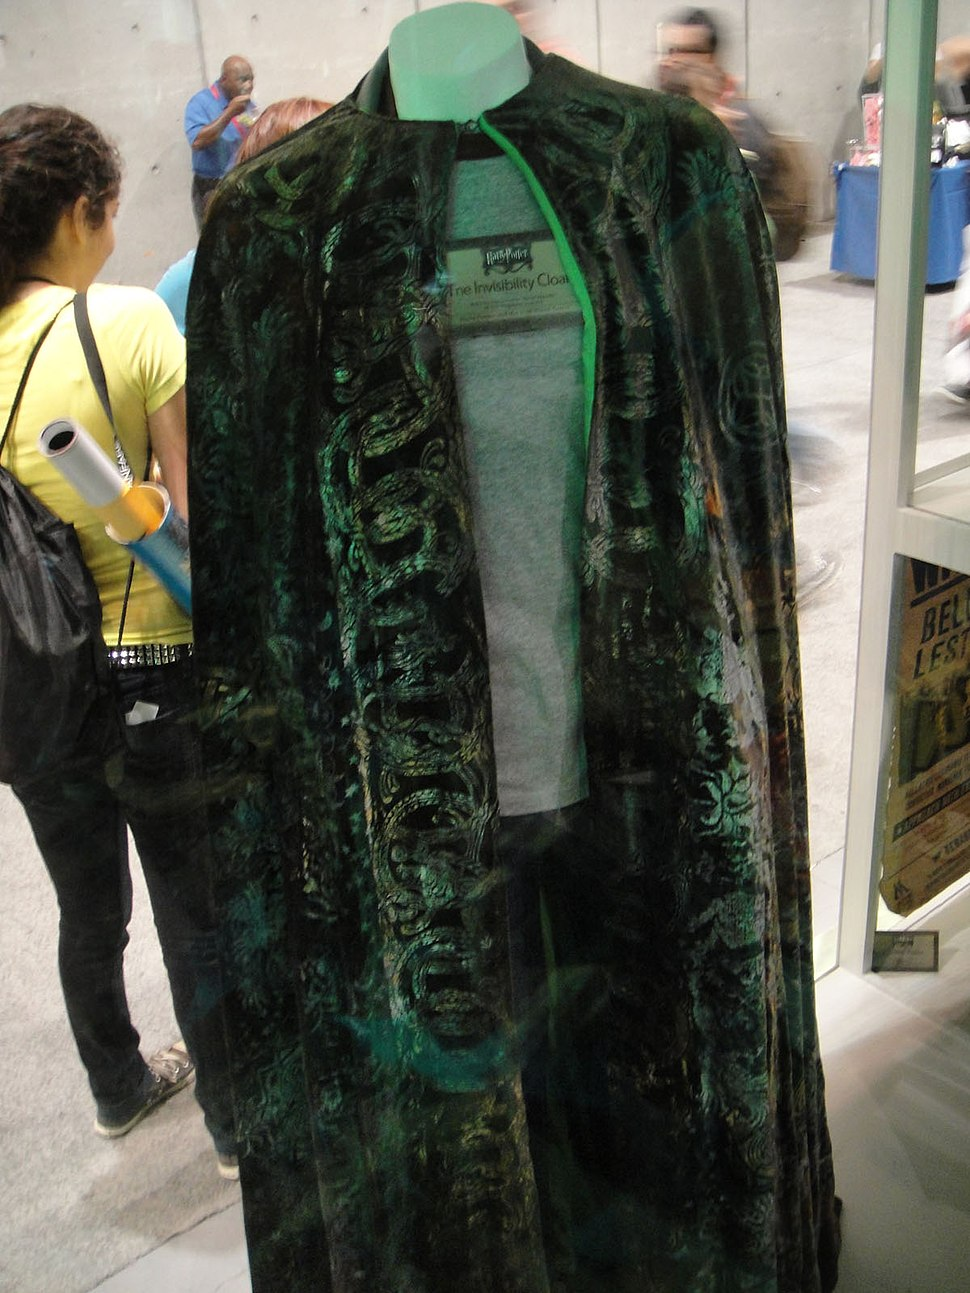 Comic-Con 2010 - WB booth - Harry Potter - Invisibility Cloak (4859614758)